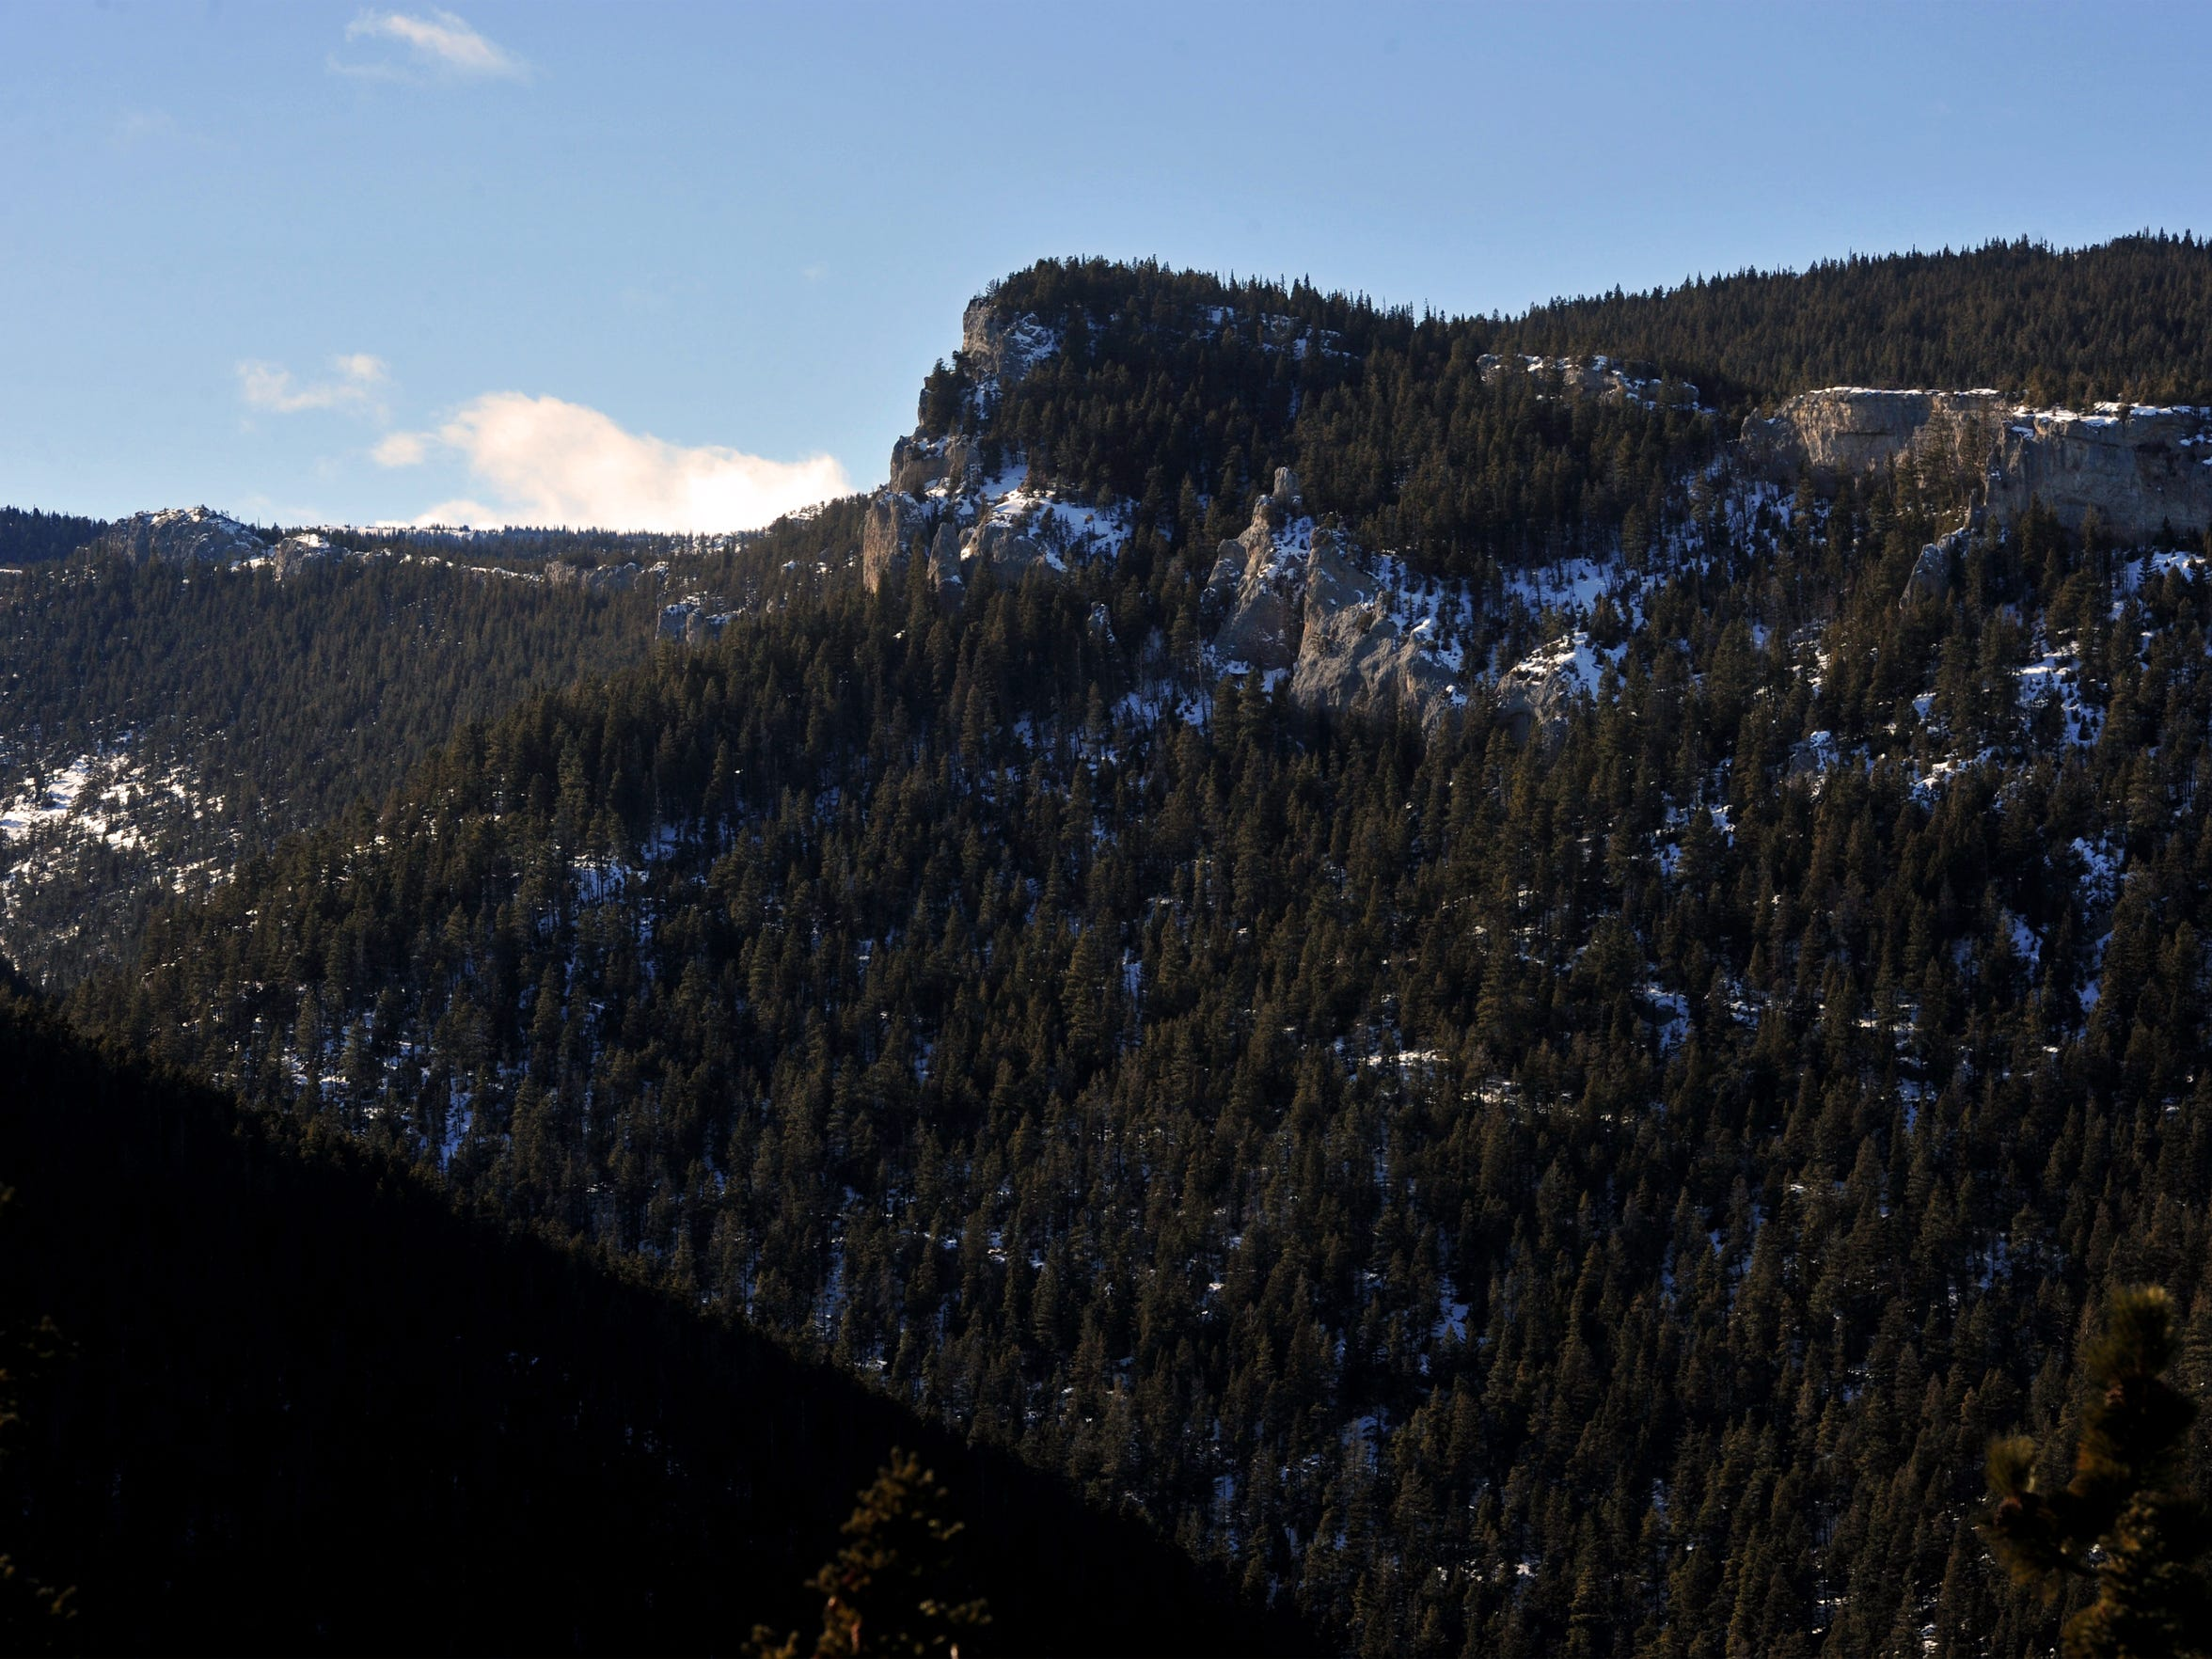 Half Moon Canyon in the Big Snowy Mountains Wilderness